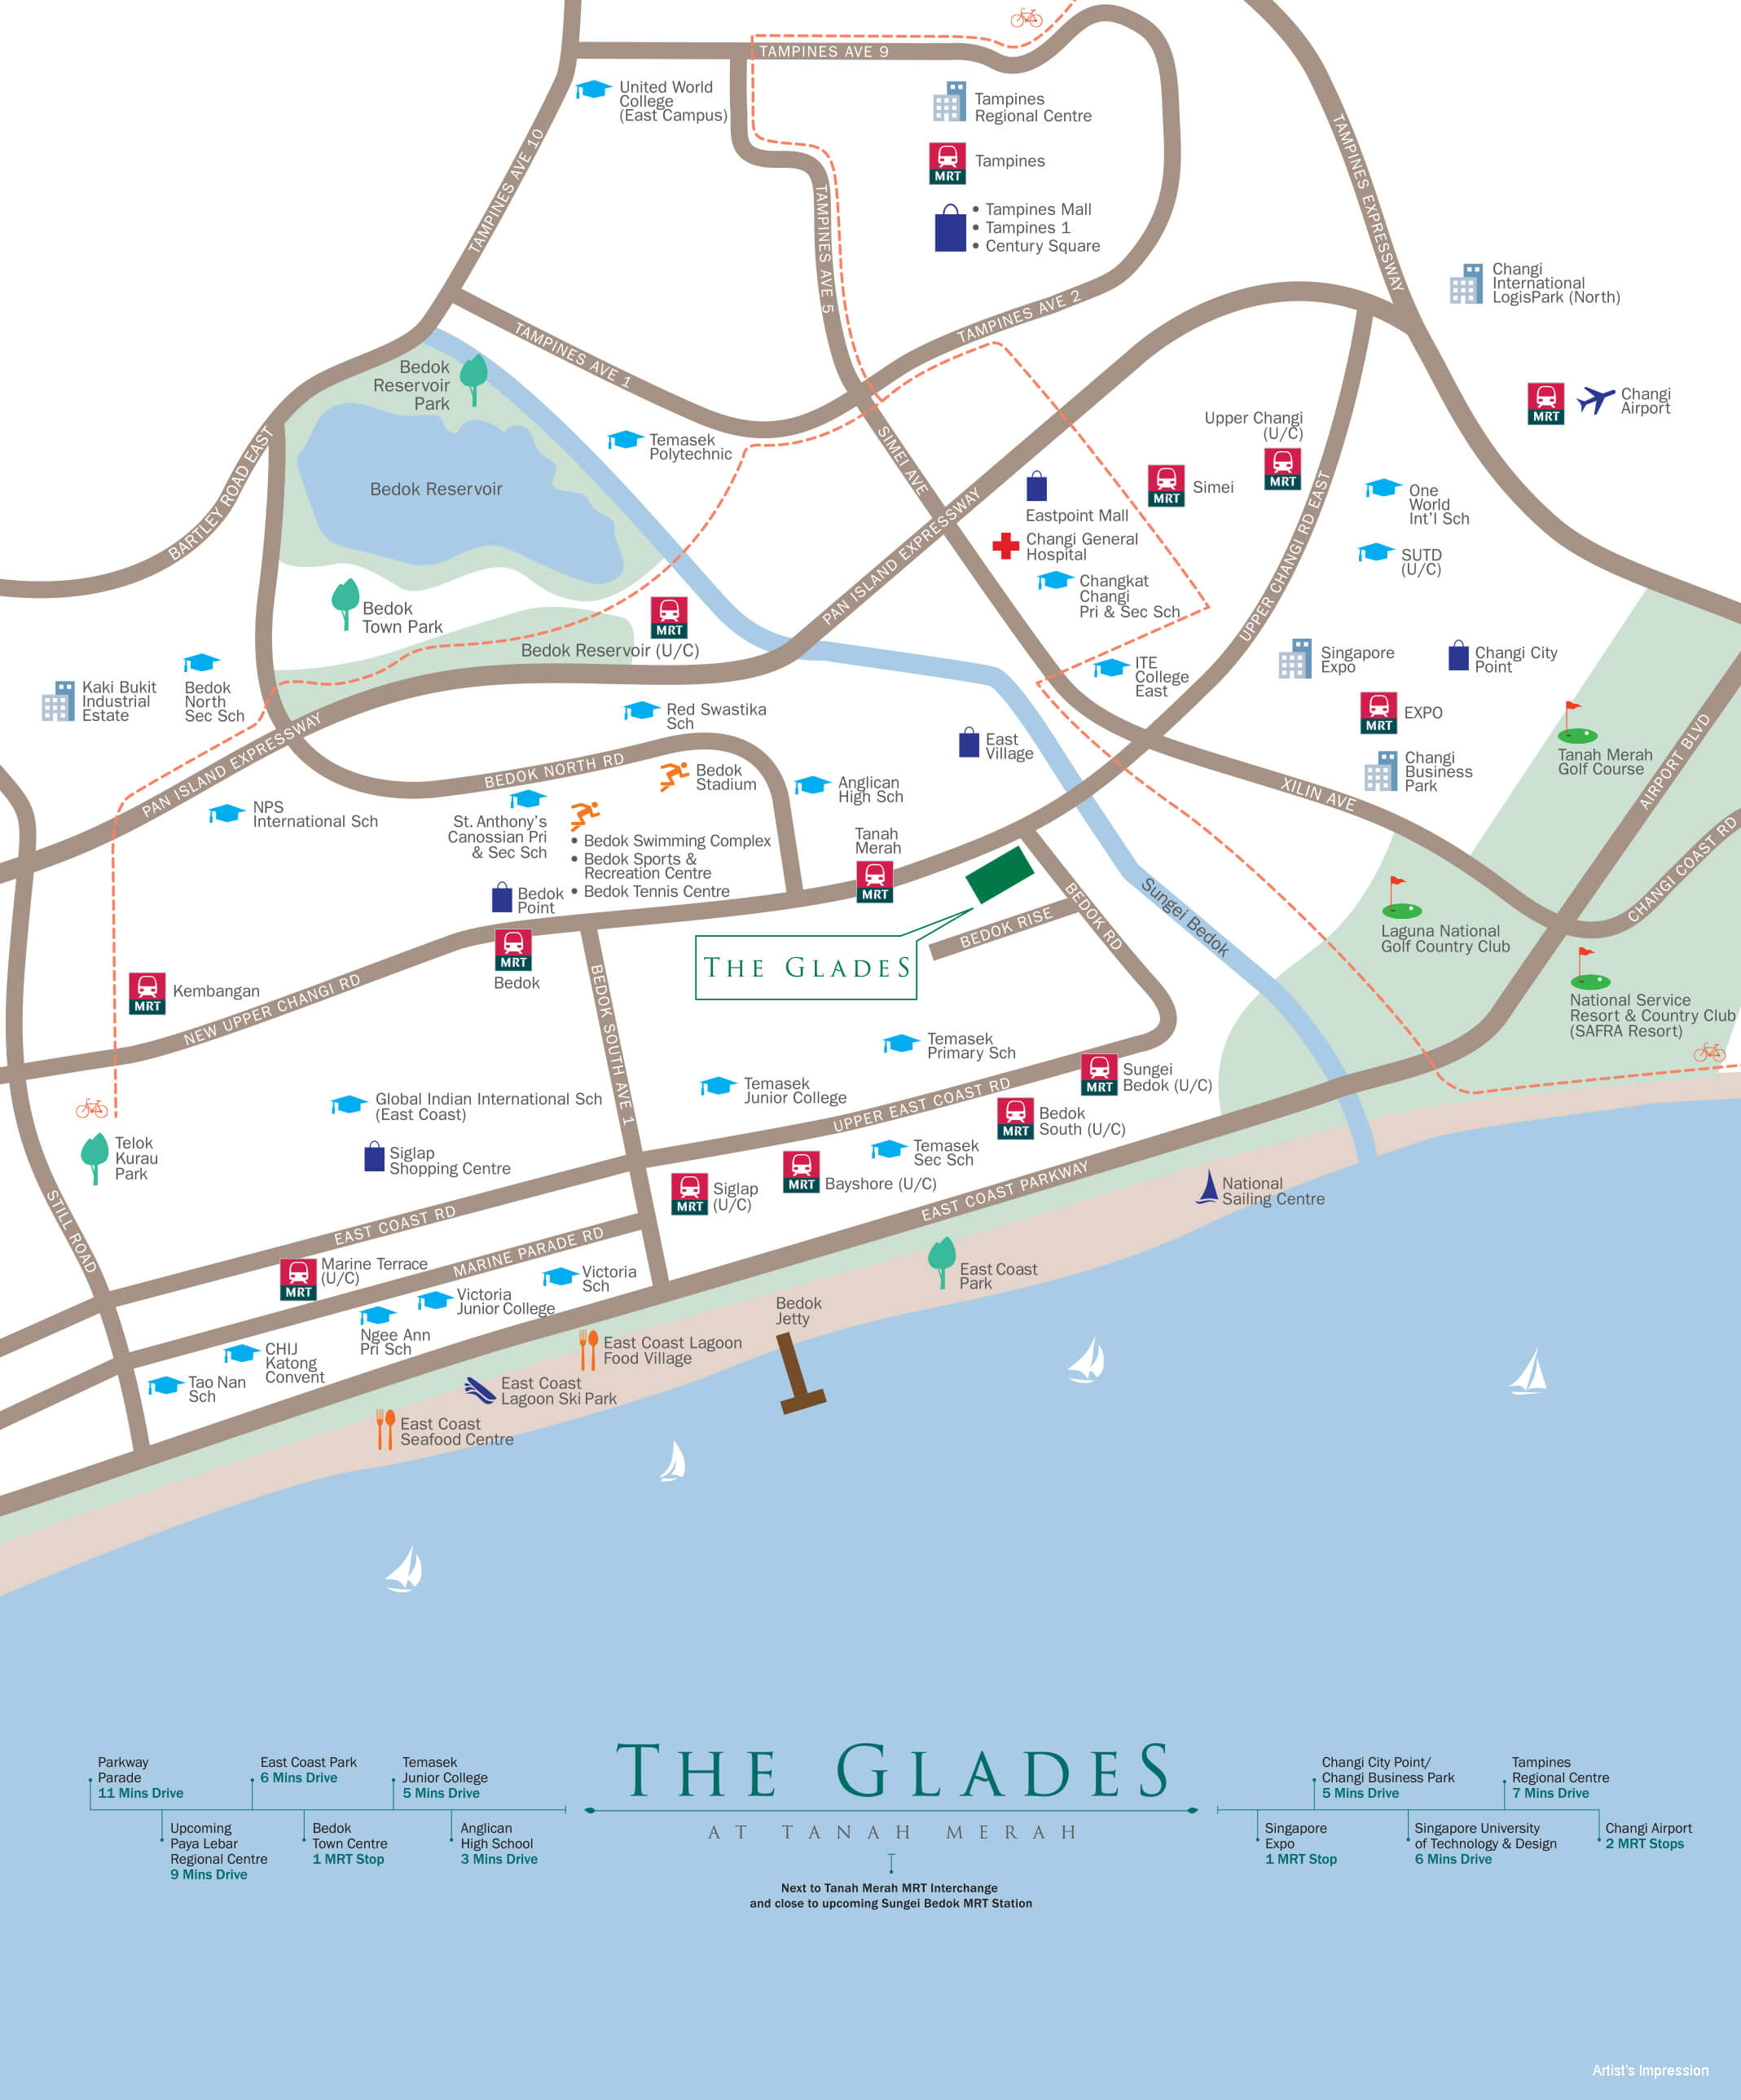 The Glades, Tanah Merah, location map